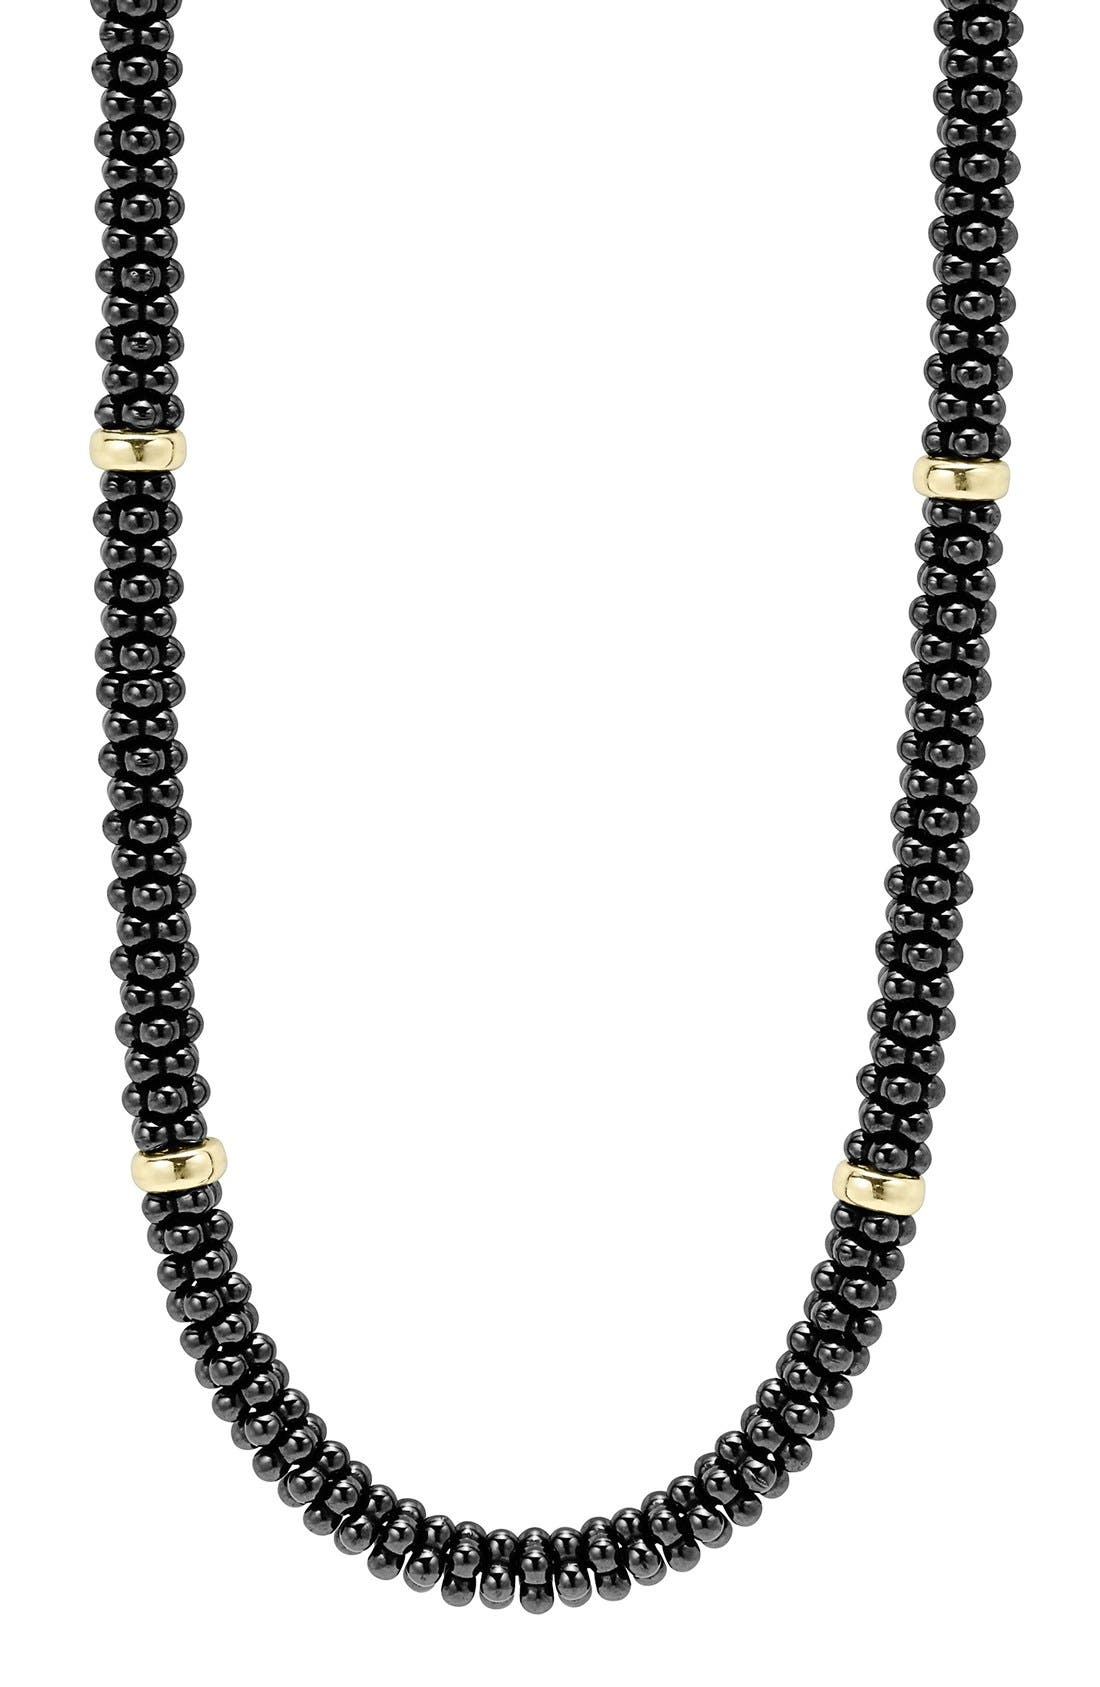 'Black Caviar' Station Rope Necklace,                             Alternate thumbnail 2, color,                             Black Caviar/ Gold